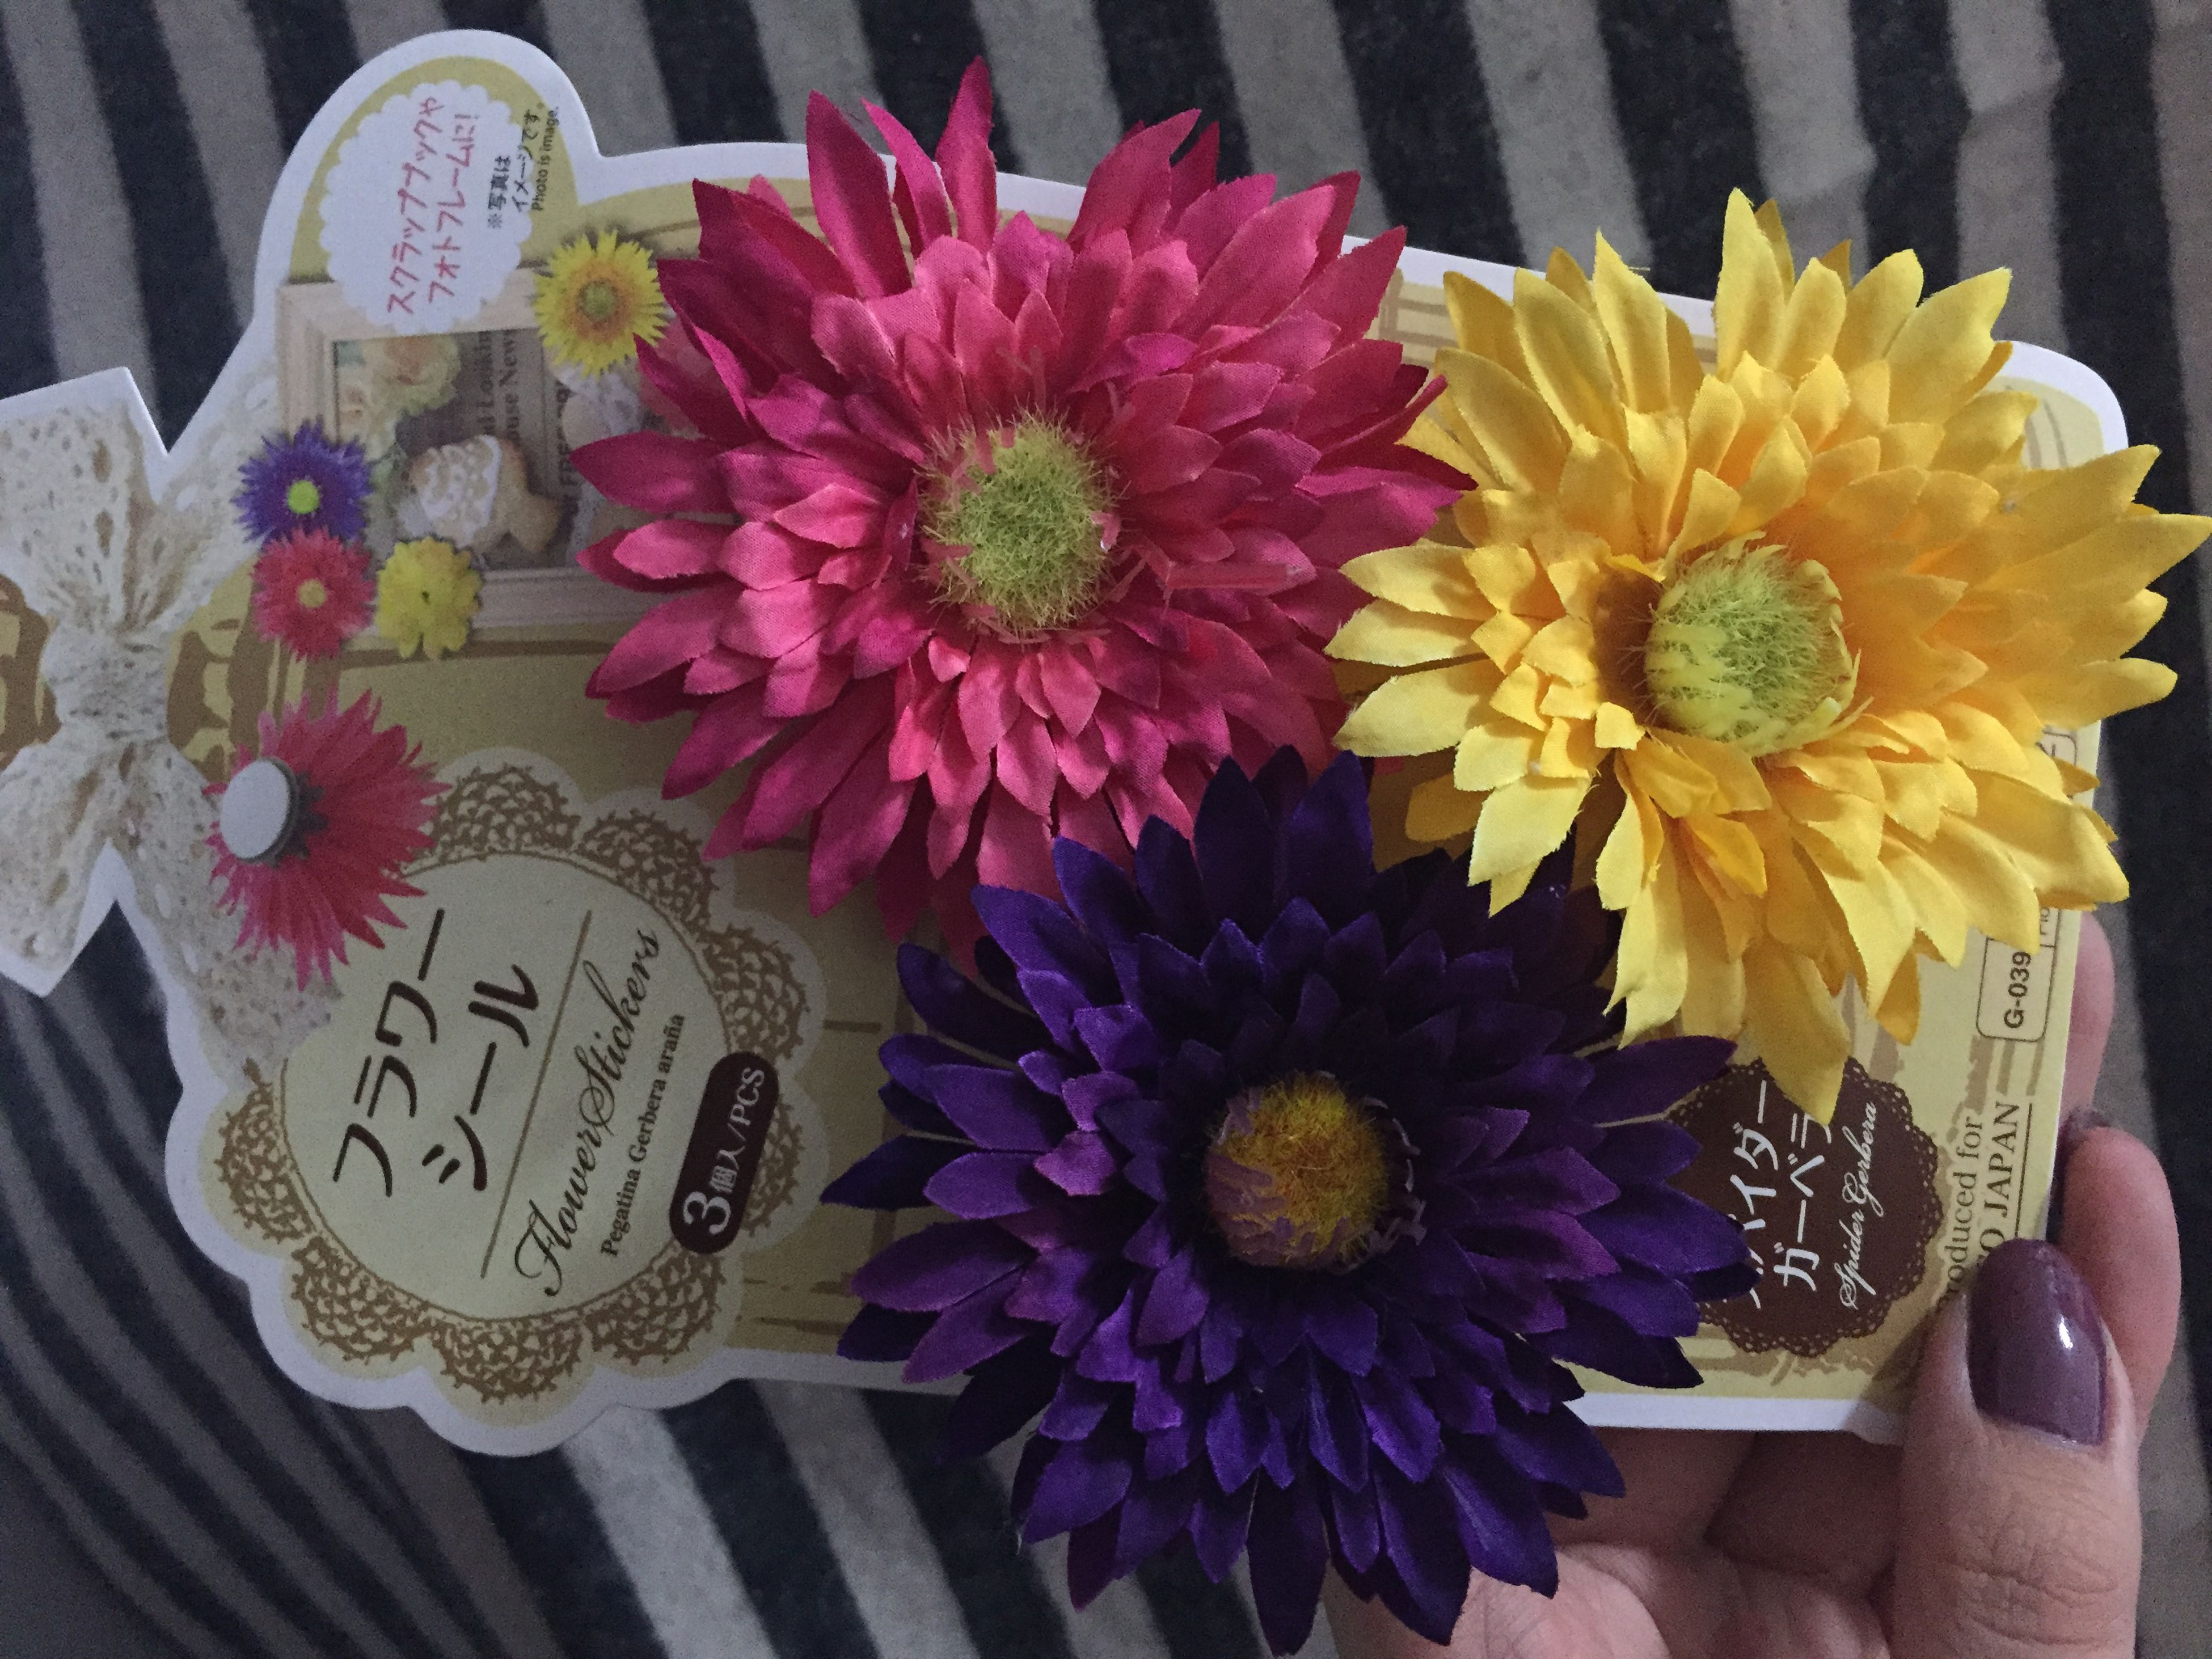 flower, freshness, indoors, petal, flower head, table, high angle view, close-up, still life, fragility, yellow, vase, multi colored, text, bouquet, variation, decoration, no people, flower arrangement, beauty in nature